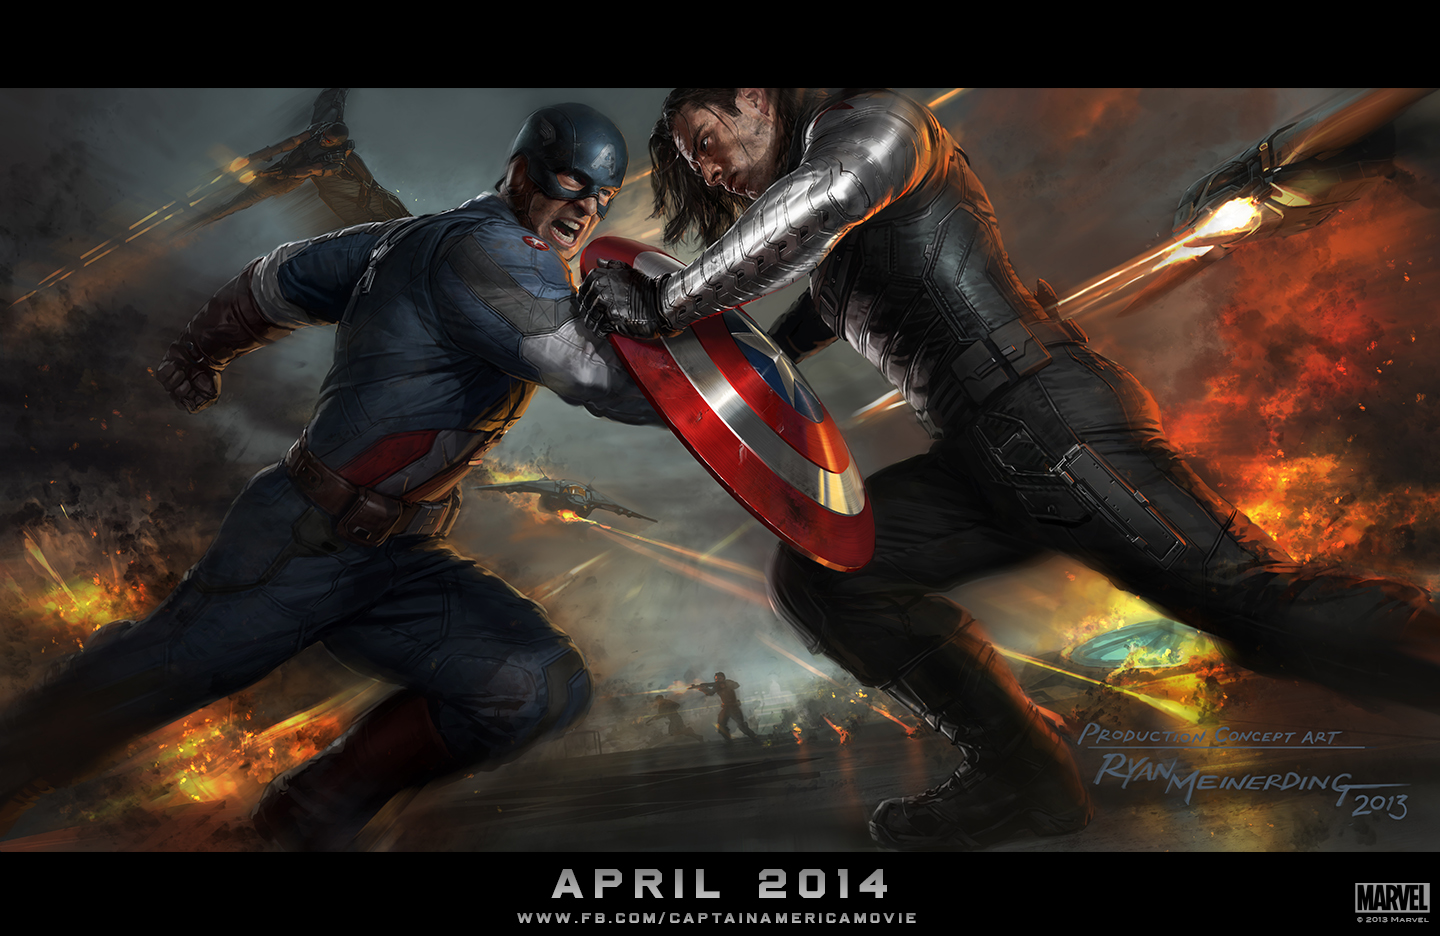 Captain America 2 Concept Artwork New Concept Art for Captain America: The Winter Soldier Released